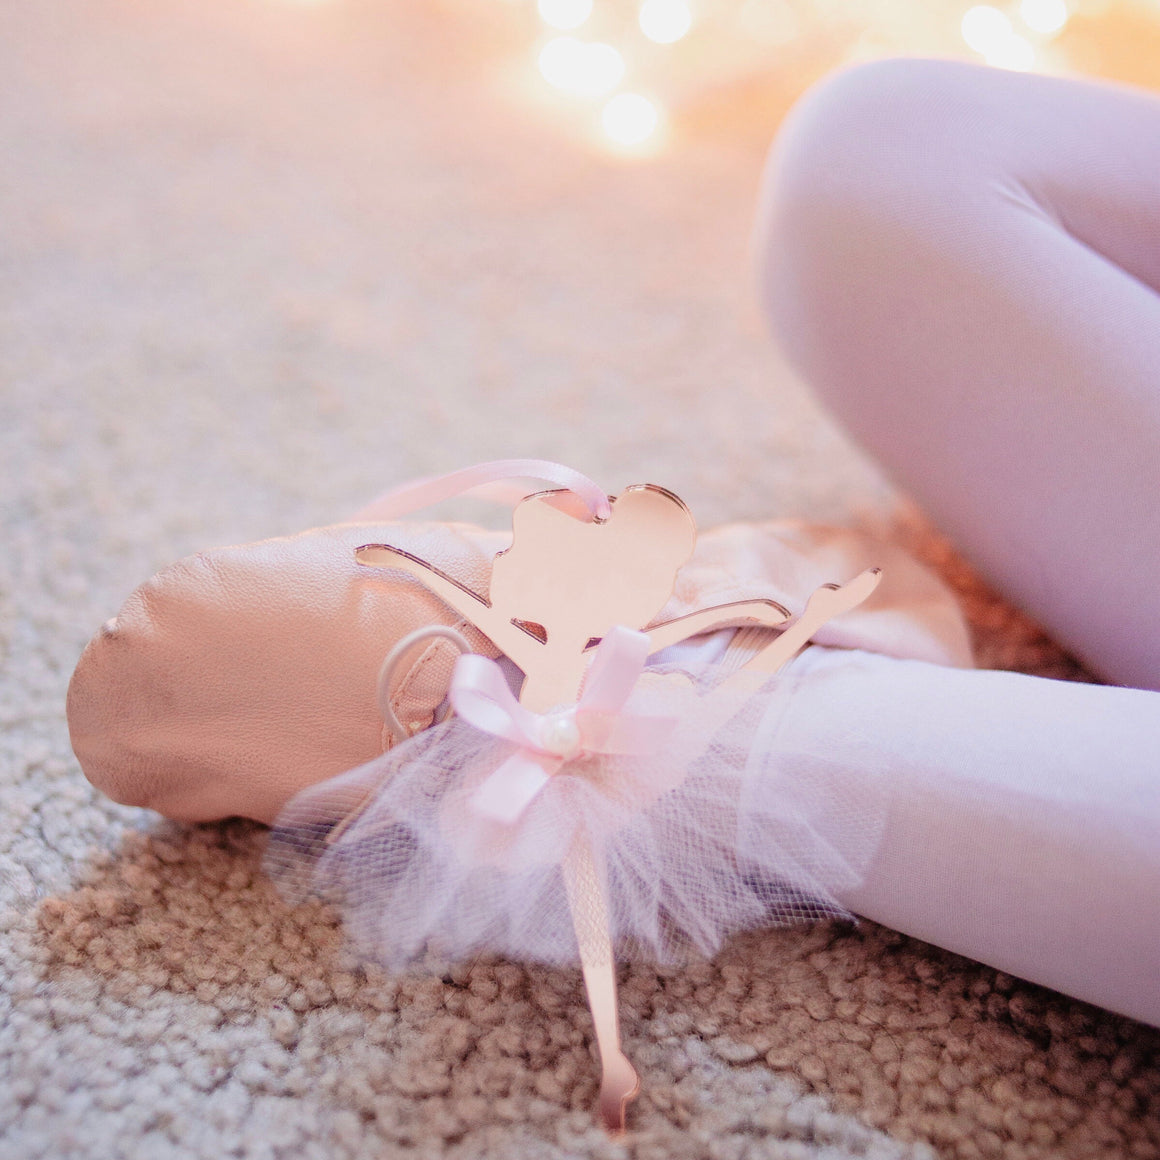 Ballerina Christmas Tree Ornament in Rose Gold and Pink